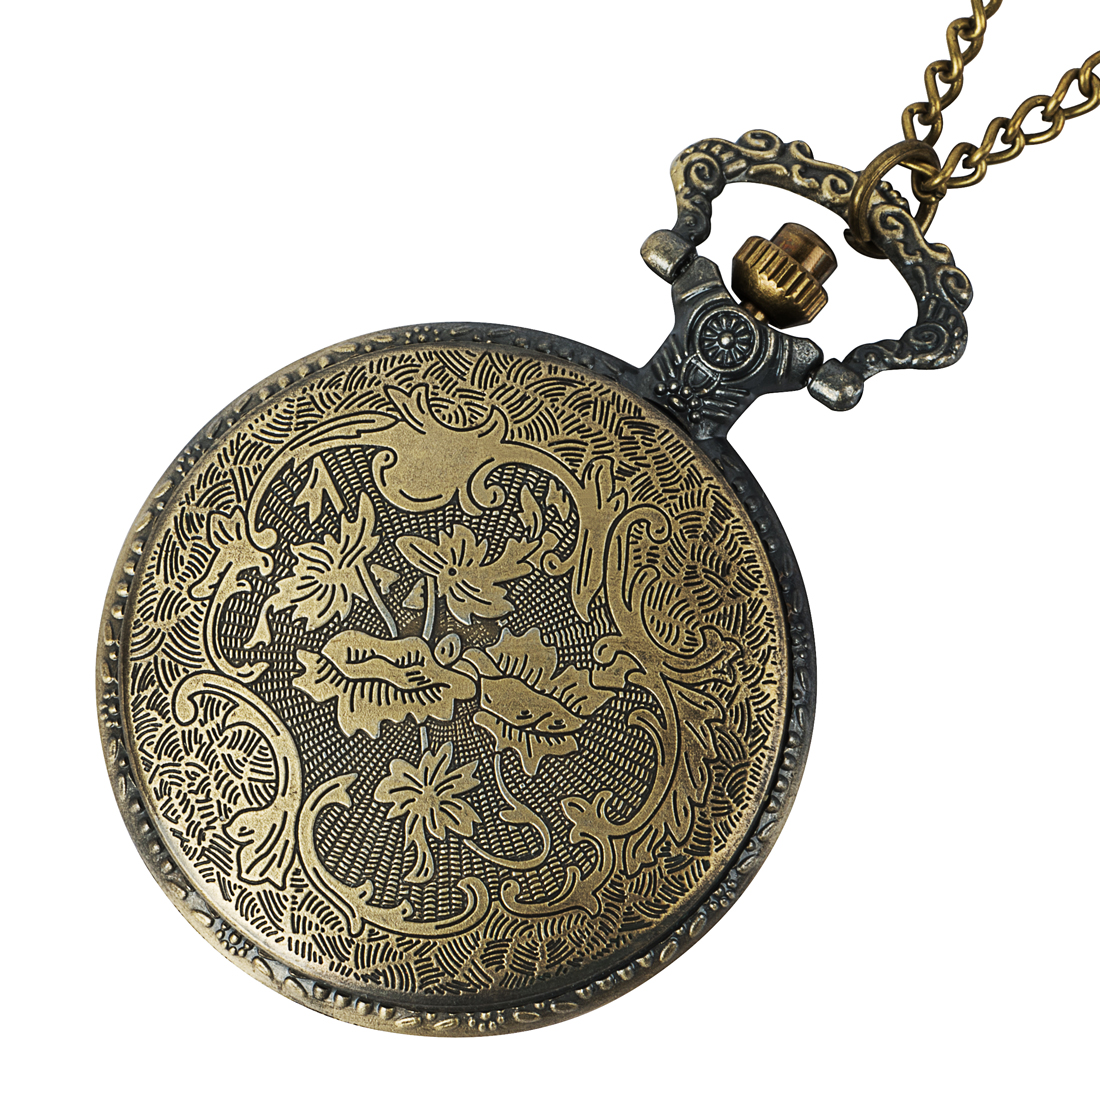 Vintage luxury gold quartz pocket watch Roman digital dial chain men 39 s and women 39 s necklace present in Pocket amp Fob Watches from Watches